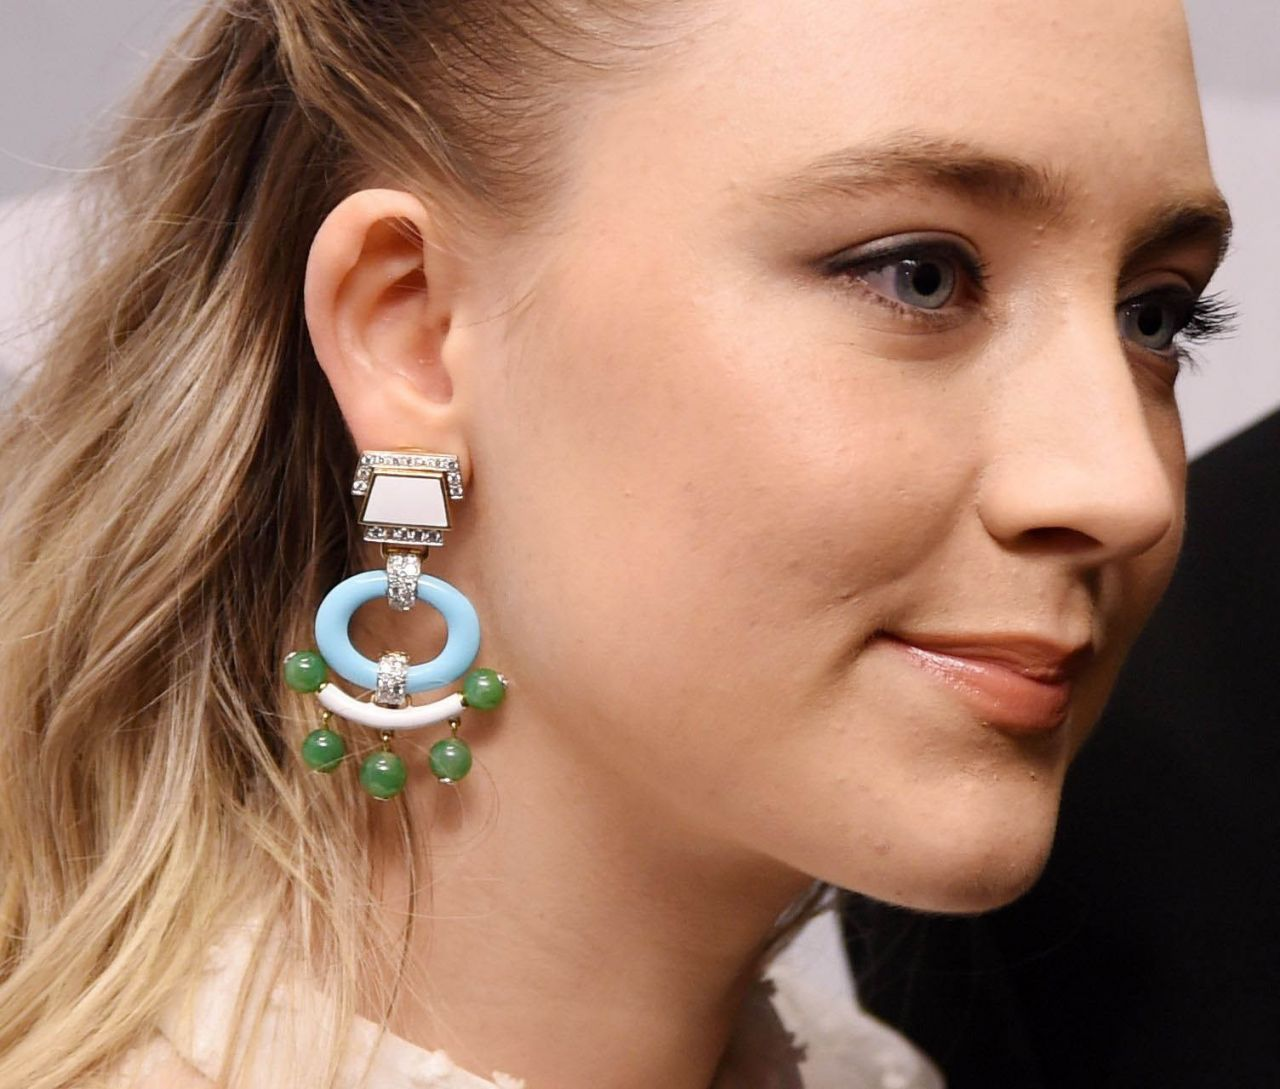 saoirse-ronan-brooklyn-screening-in-the-museum-of-modern-art-in-new-york-city-6